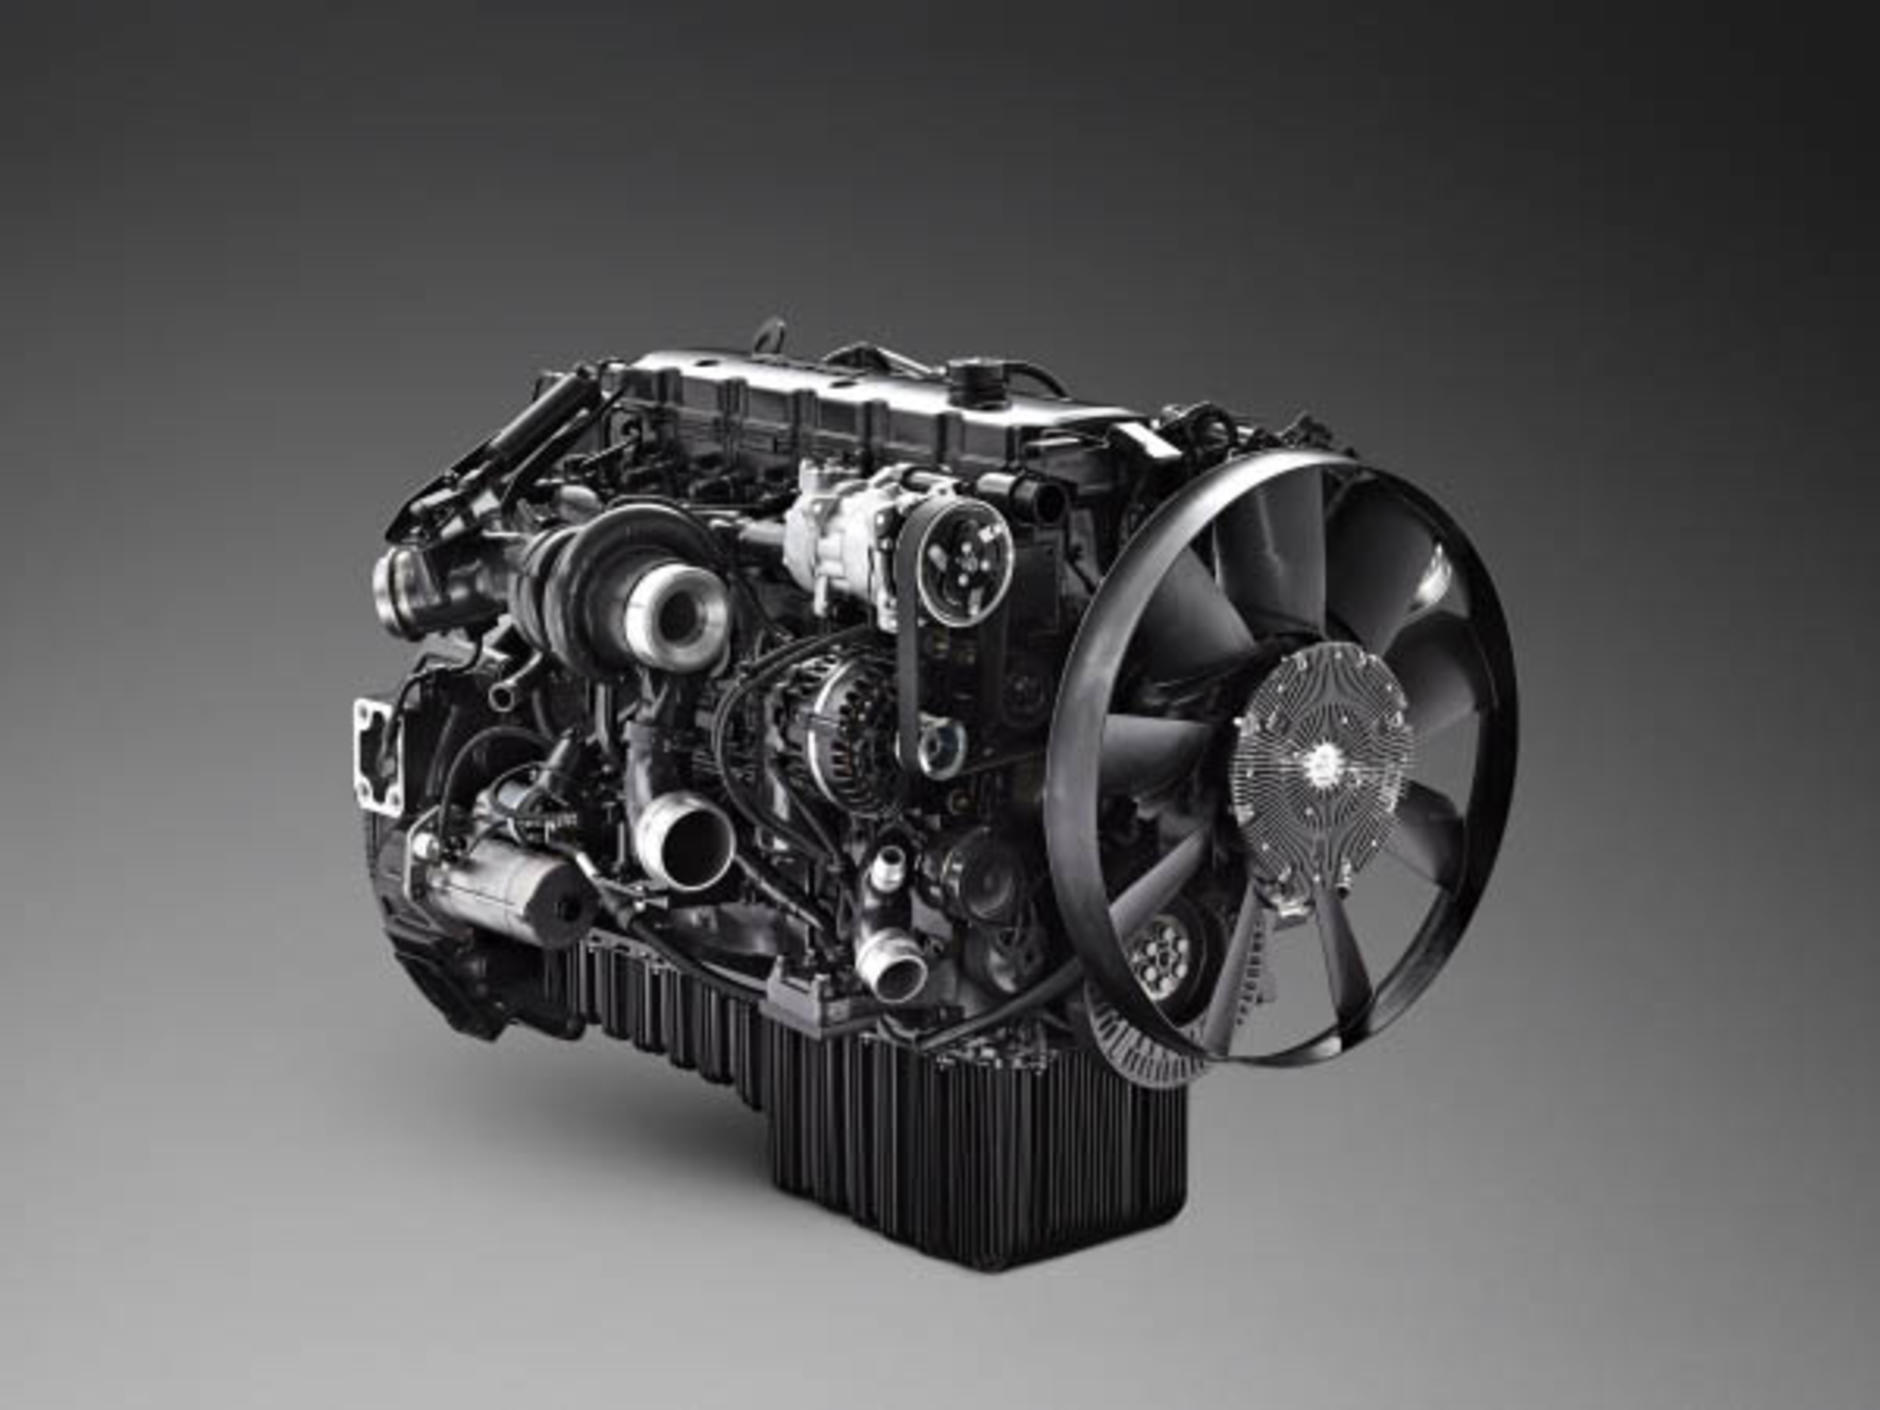 Scania introduces new 7-litre engine | Commercial Motor